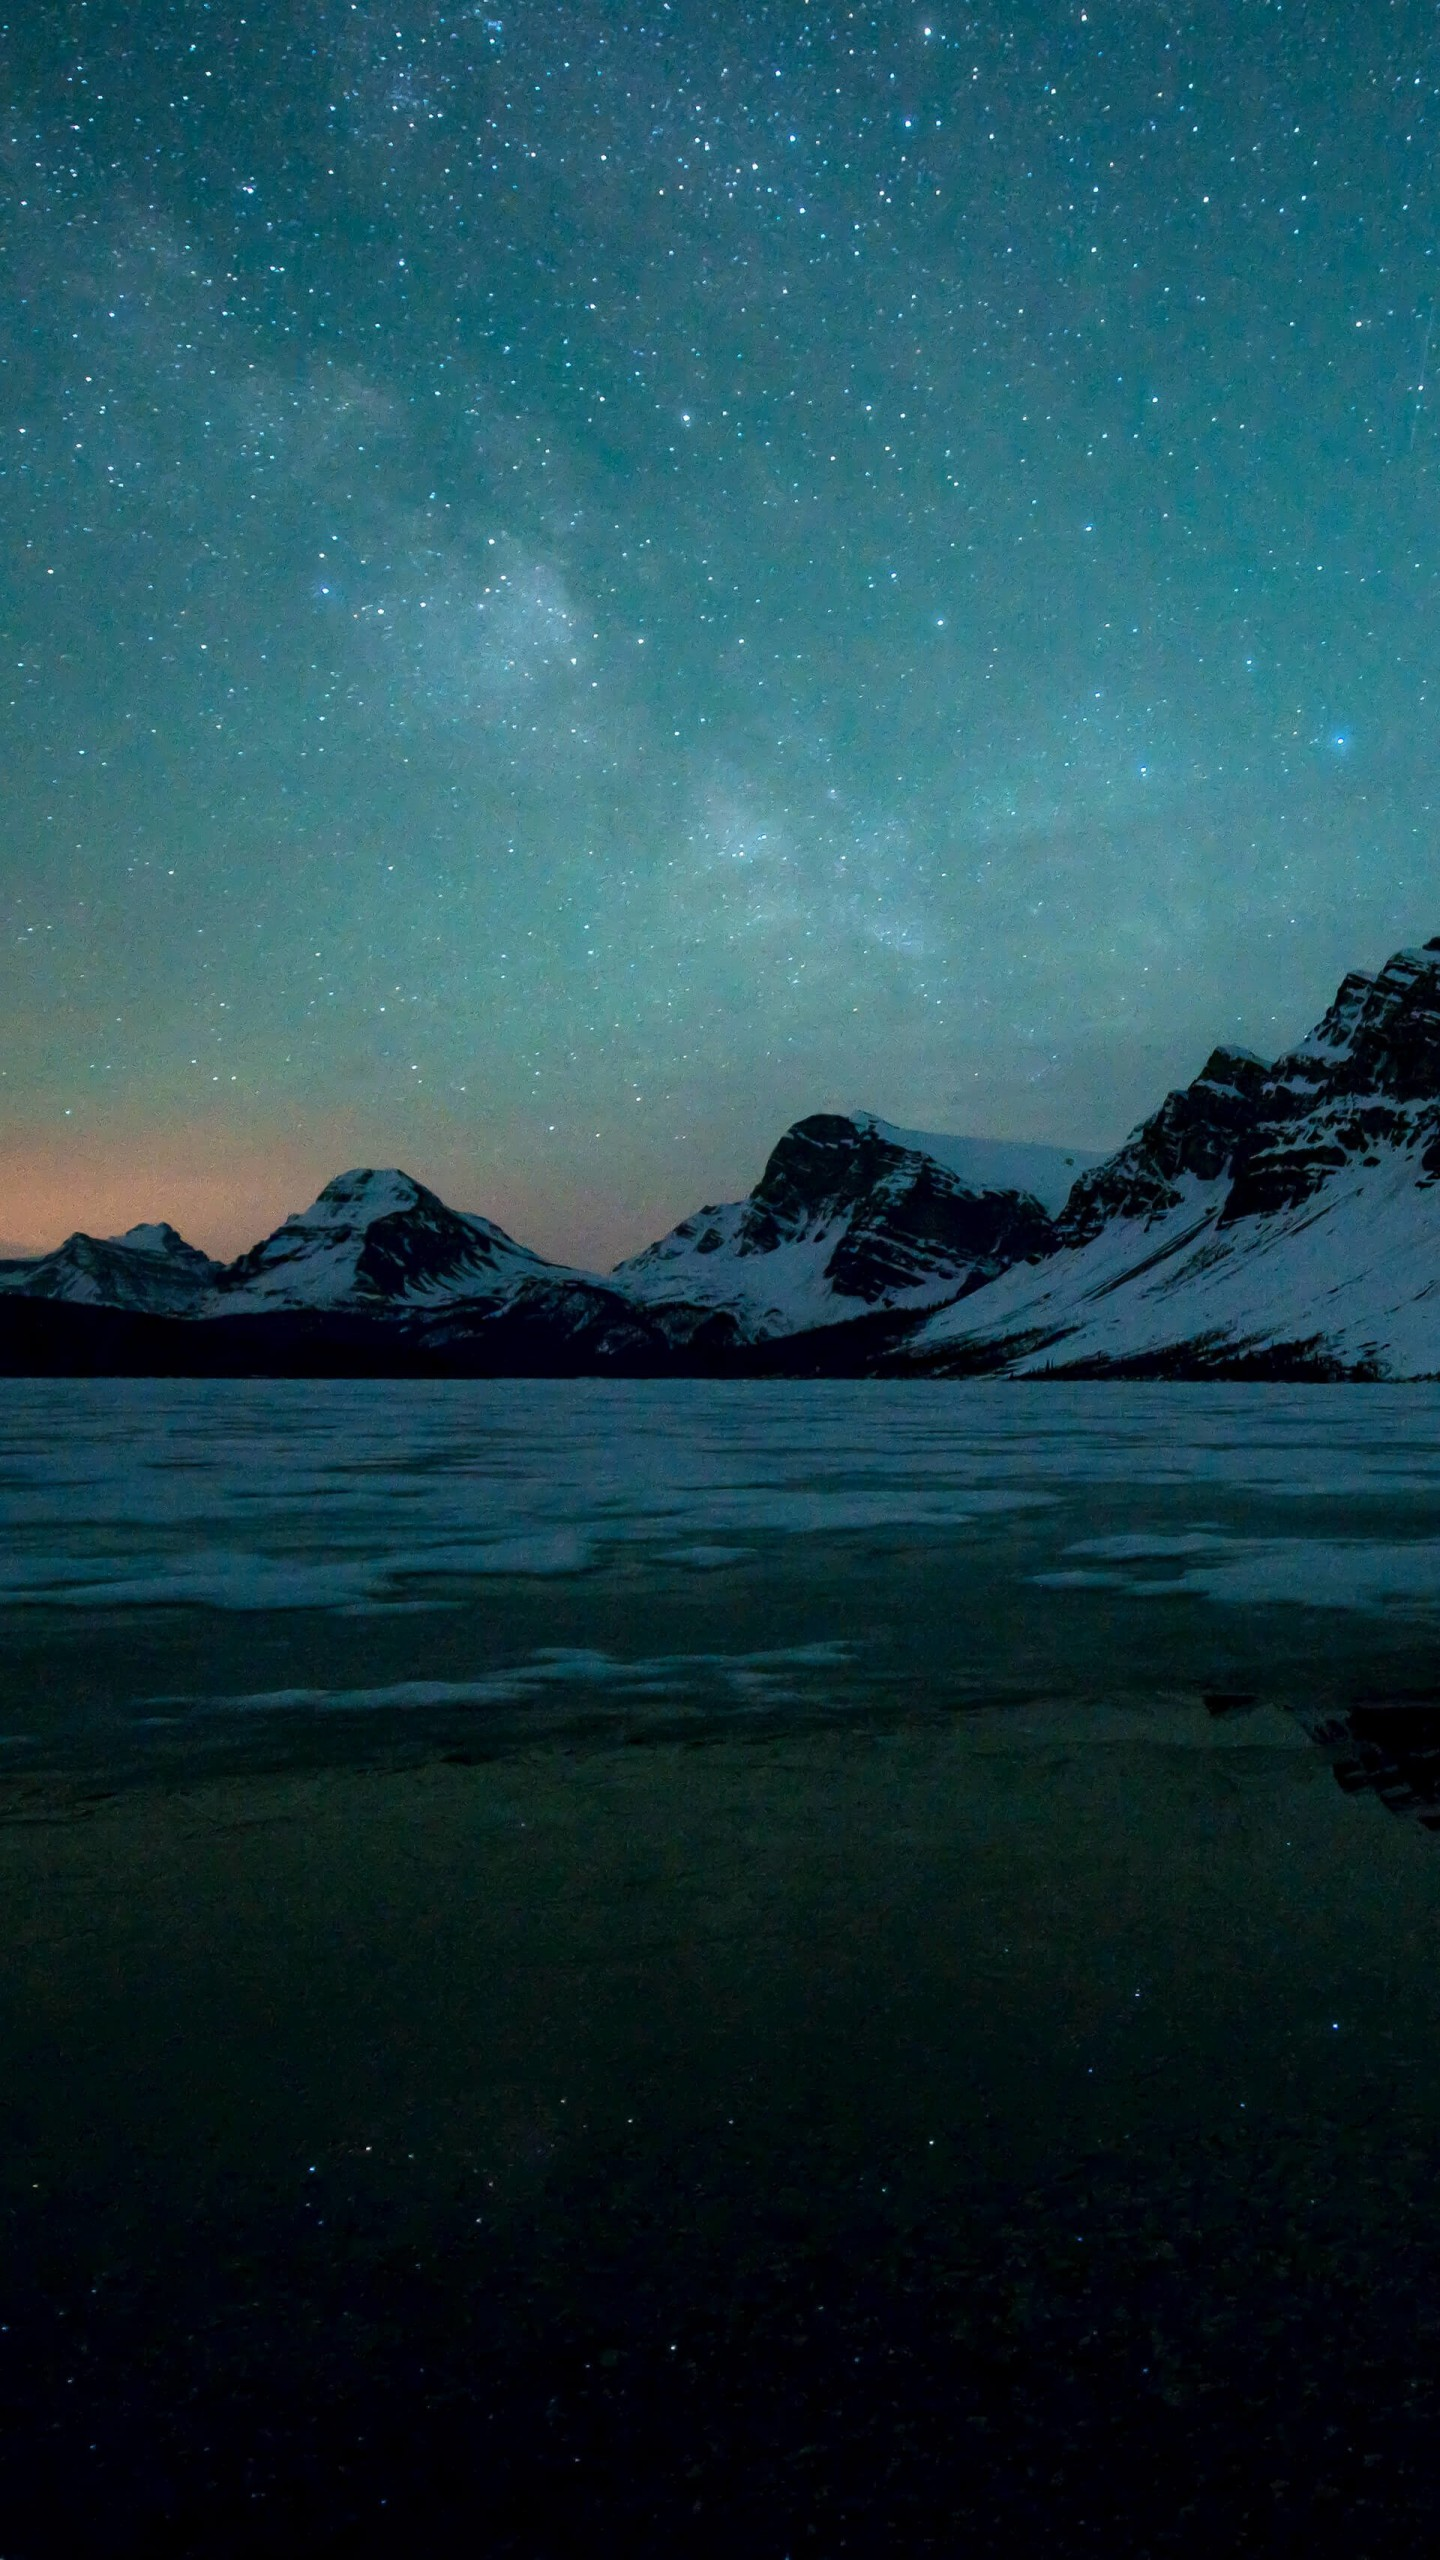 Milky Way over Bow Lake, Alberta, Canada Wallpaper for SAMSUNG Galaxy S6